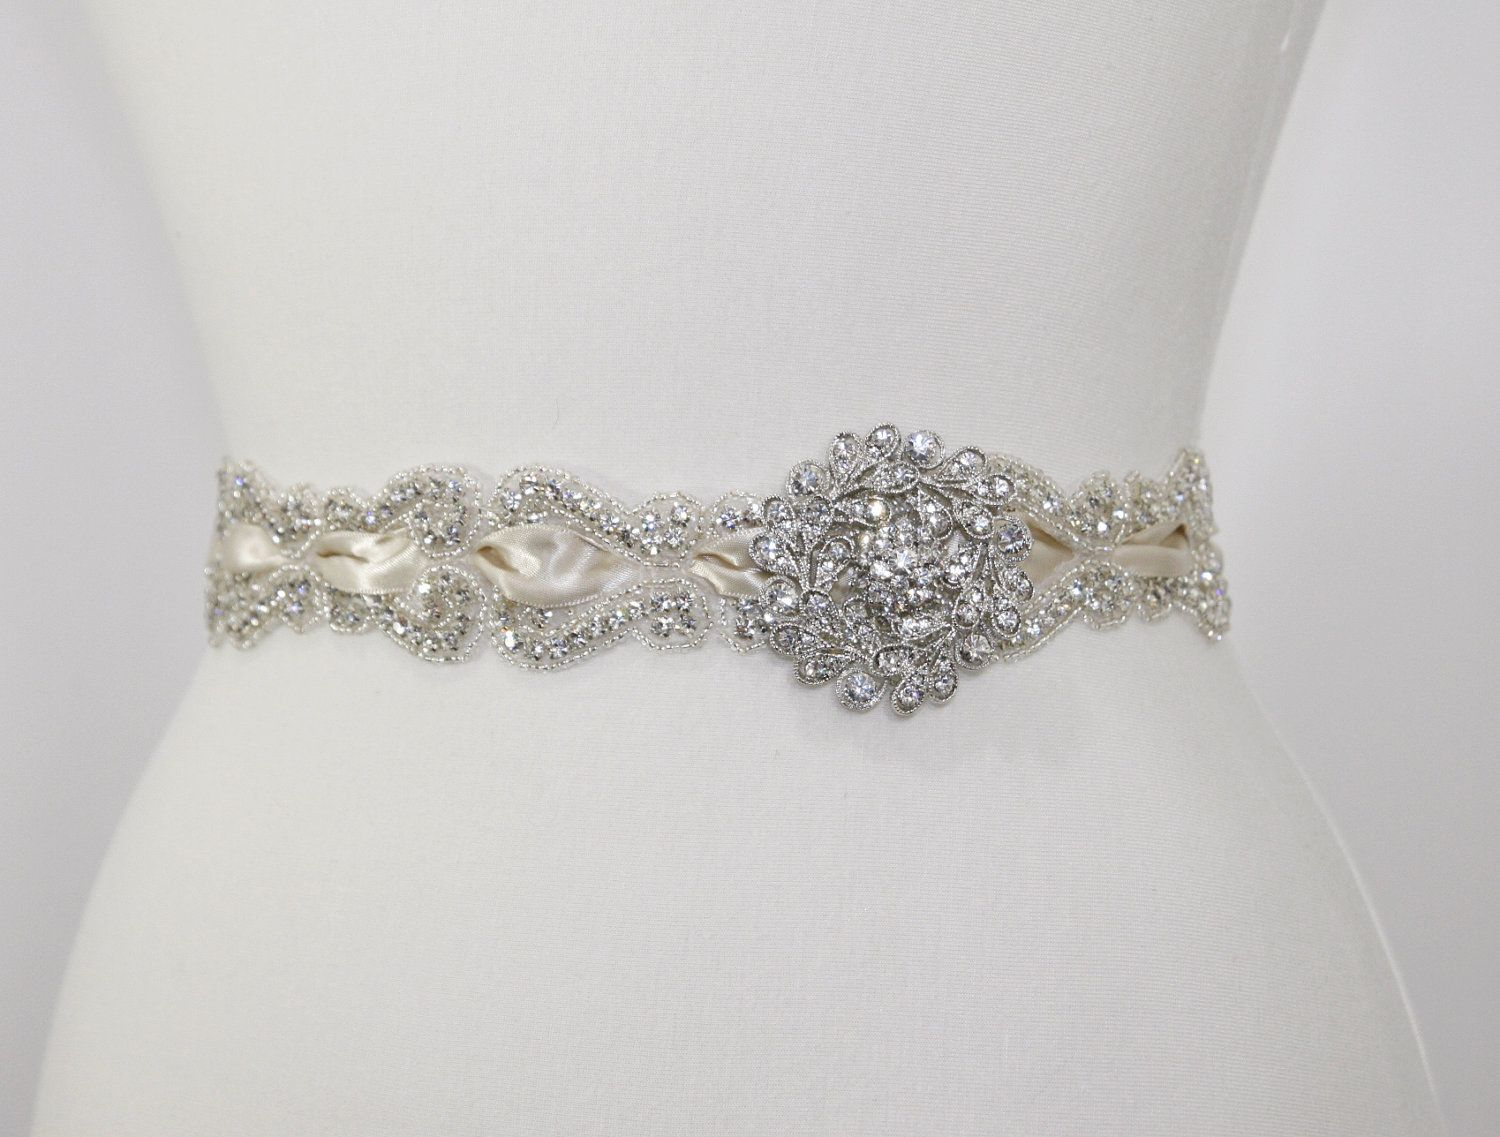 Vintage bridal sash,wedding sash,bridal accessories,beaded belt ...